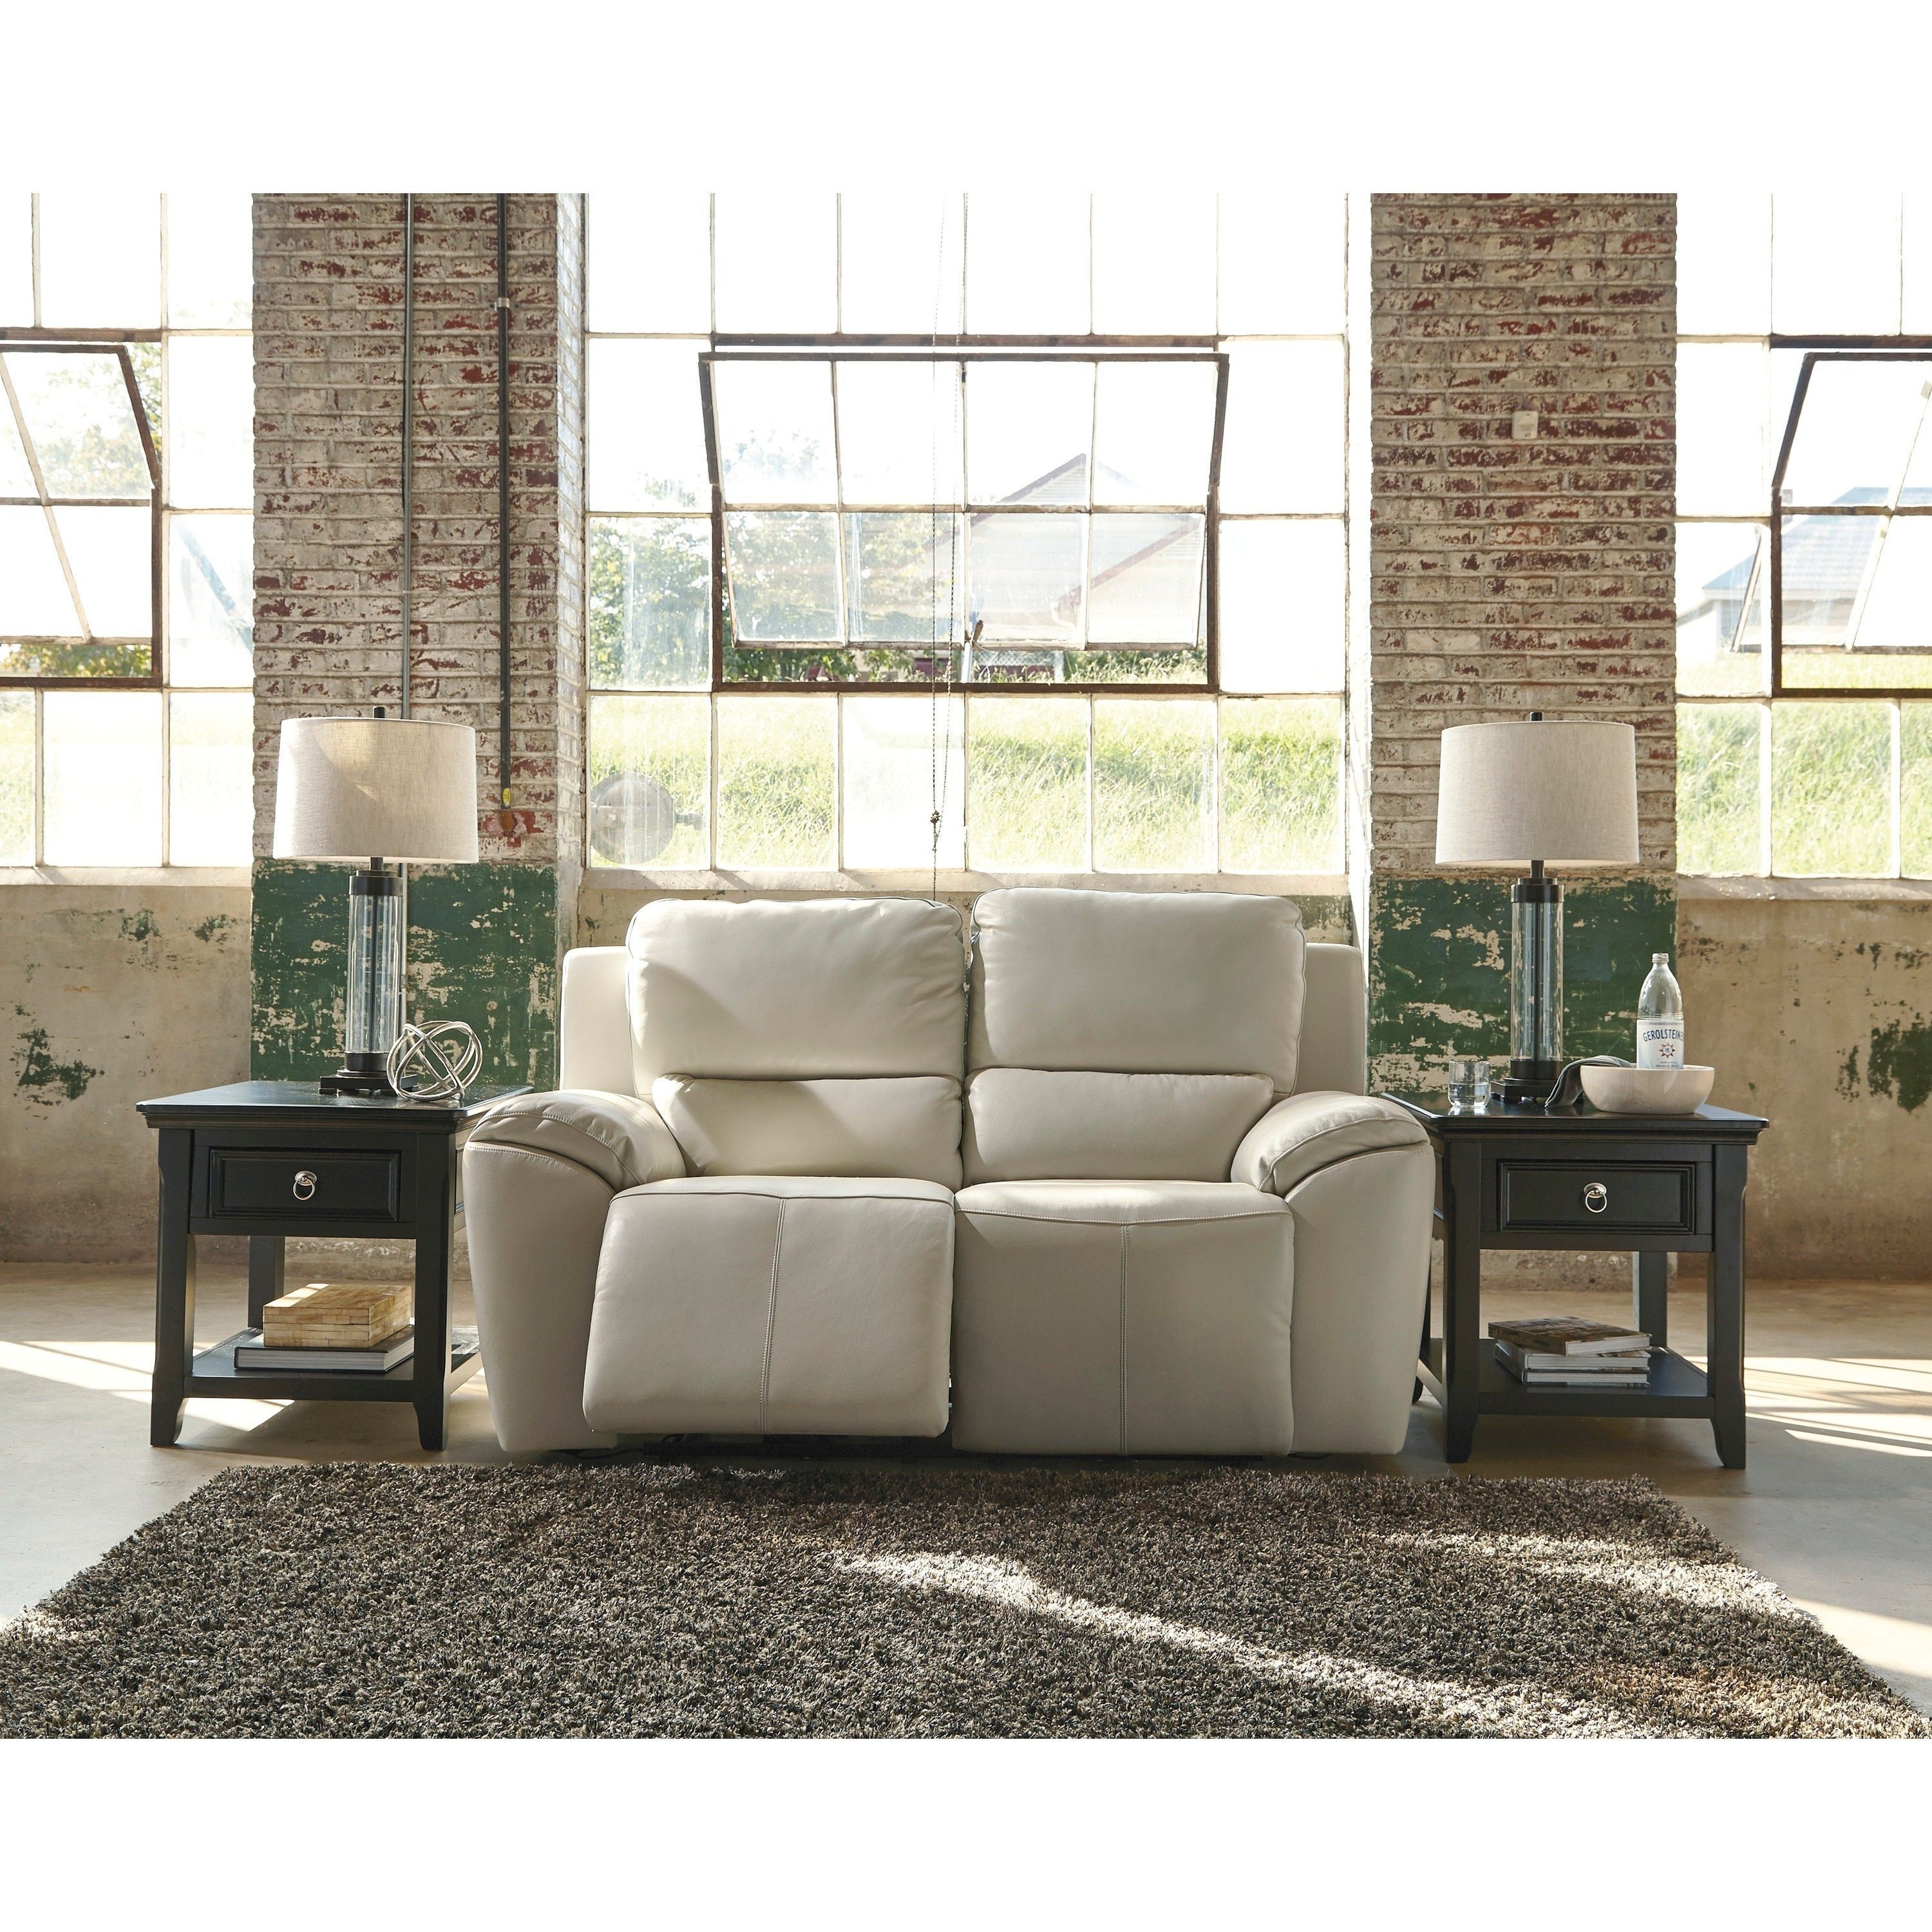 leather of loveseat sofa size covers and electric full chair tips choosing your room furniture living with cream recliners the furnishing review for recliner express